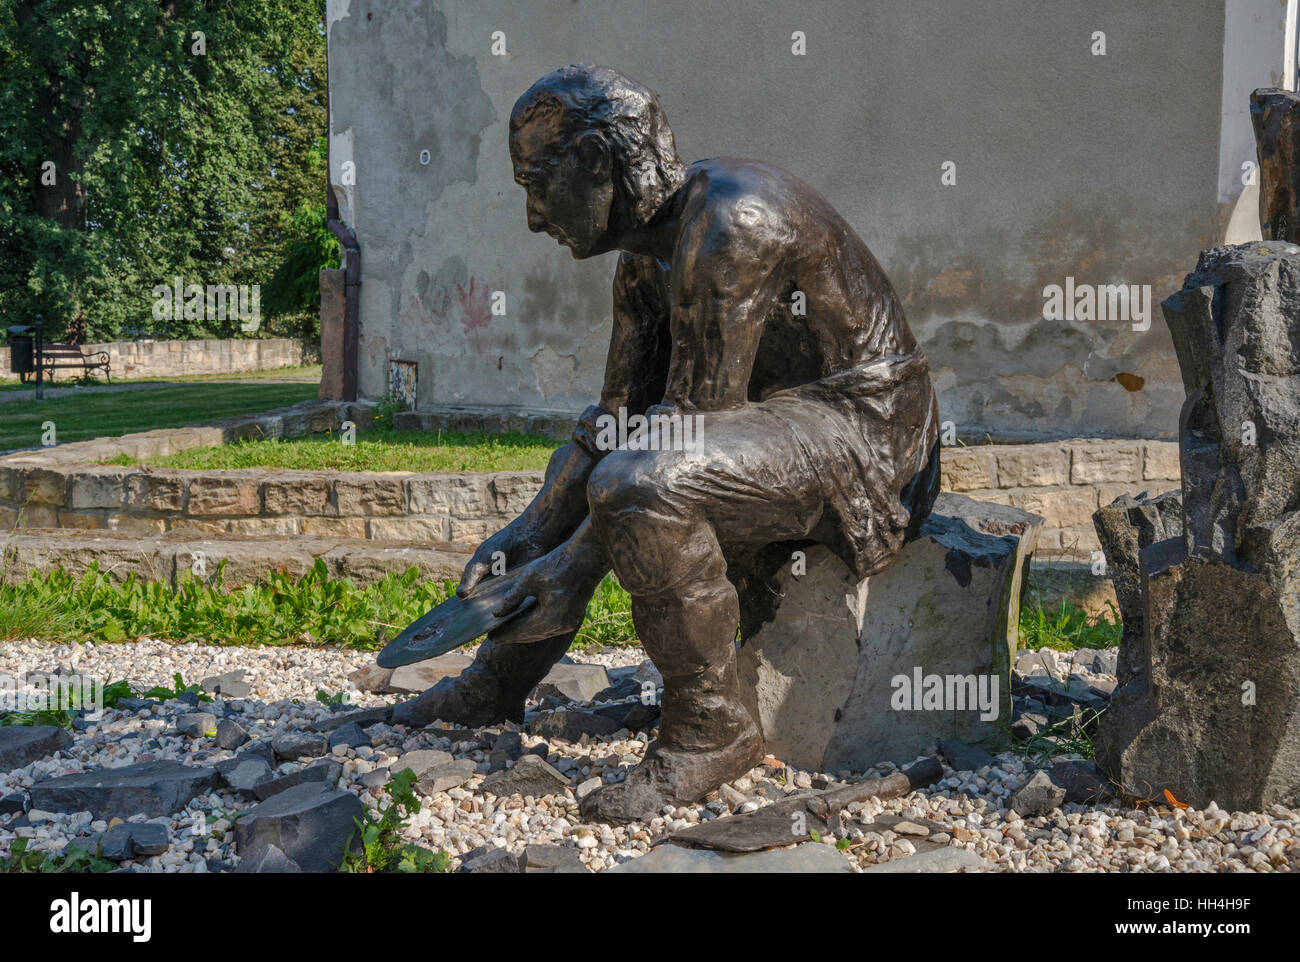 Gold Prospector statue near Gold Museum in Zlotoryja, Lower Silesia, Poland - Stock Image